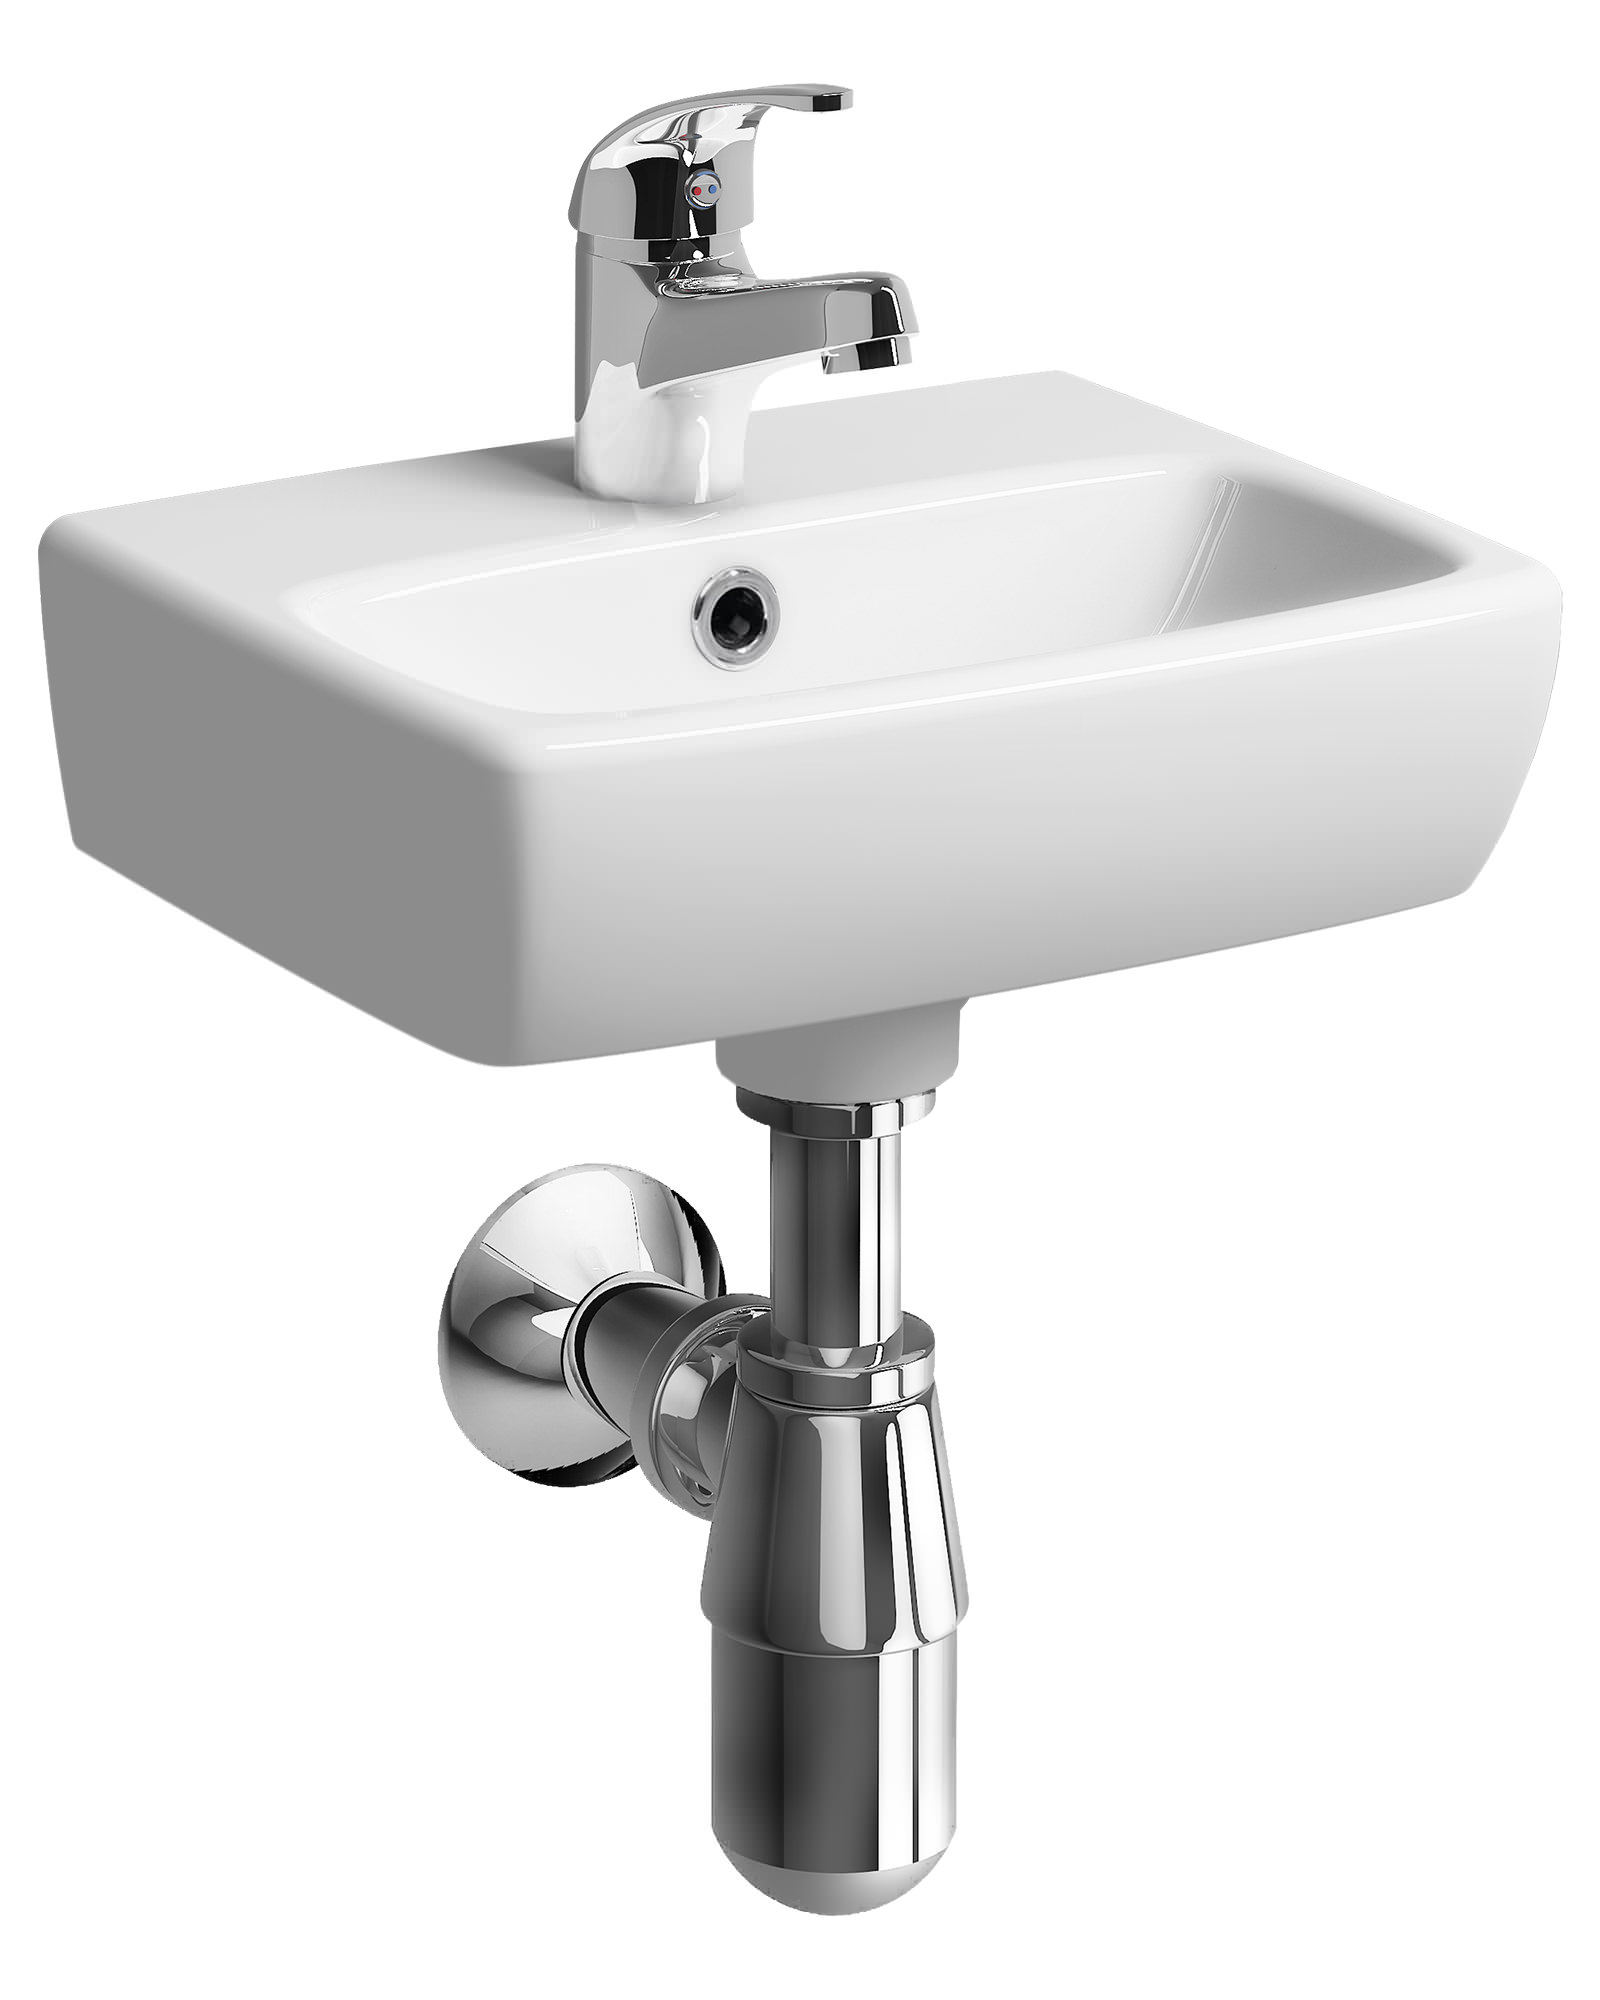 Twyford e100 square 1 tap hole 360 x 280mm handrinse washbasin for Small baths 1100